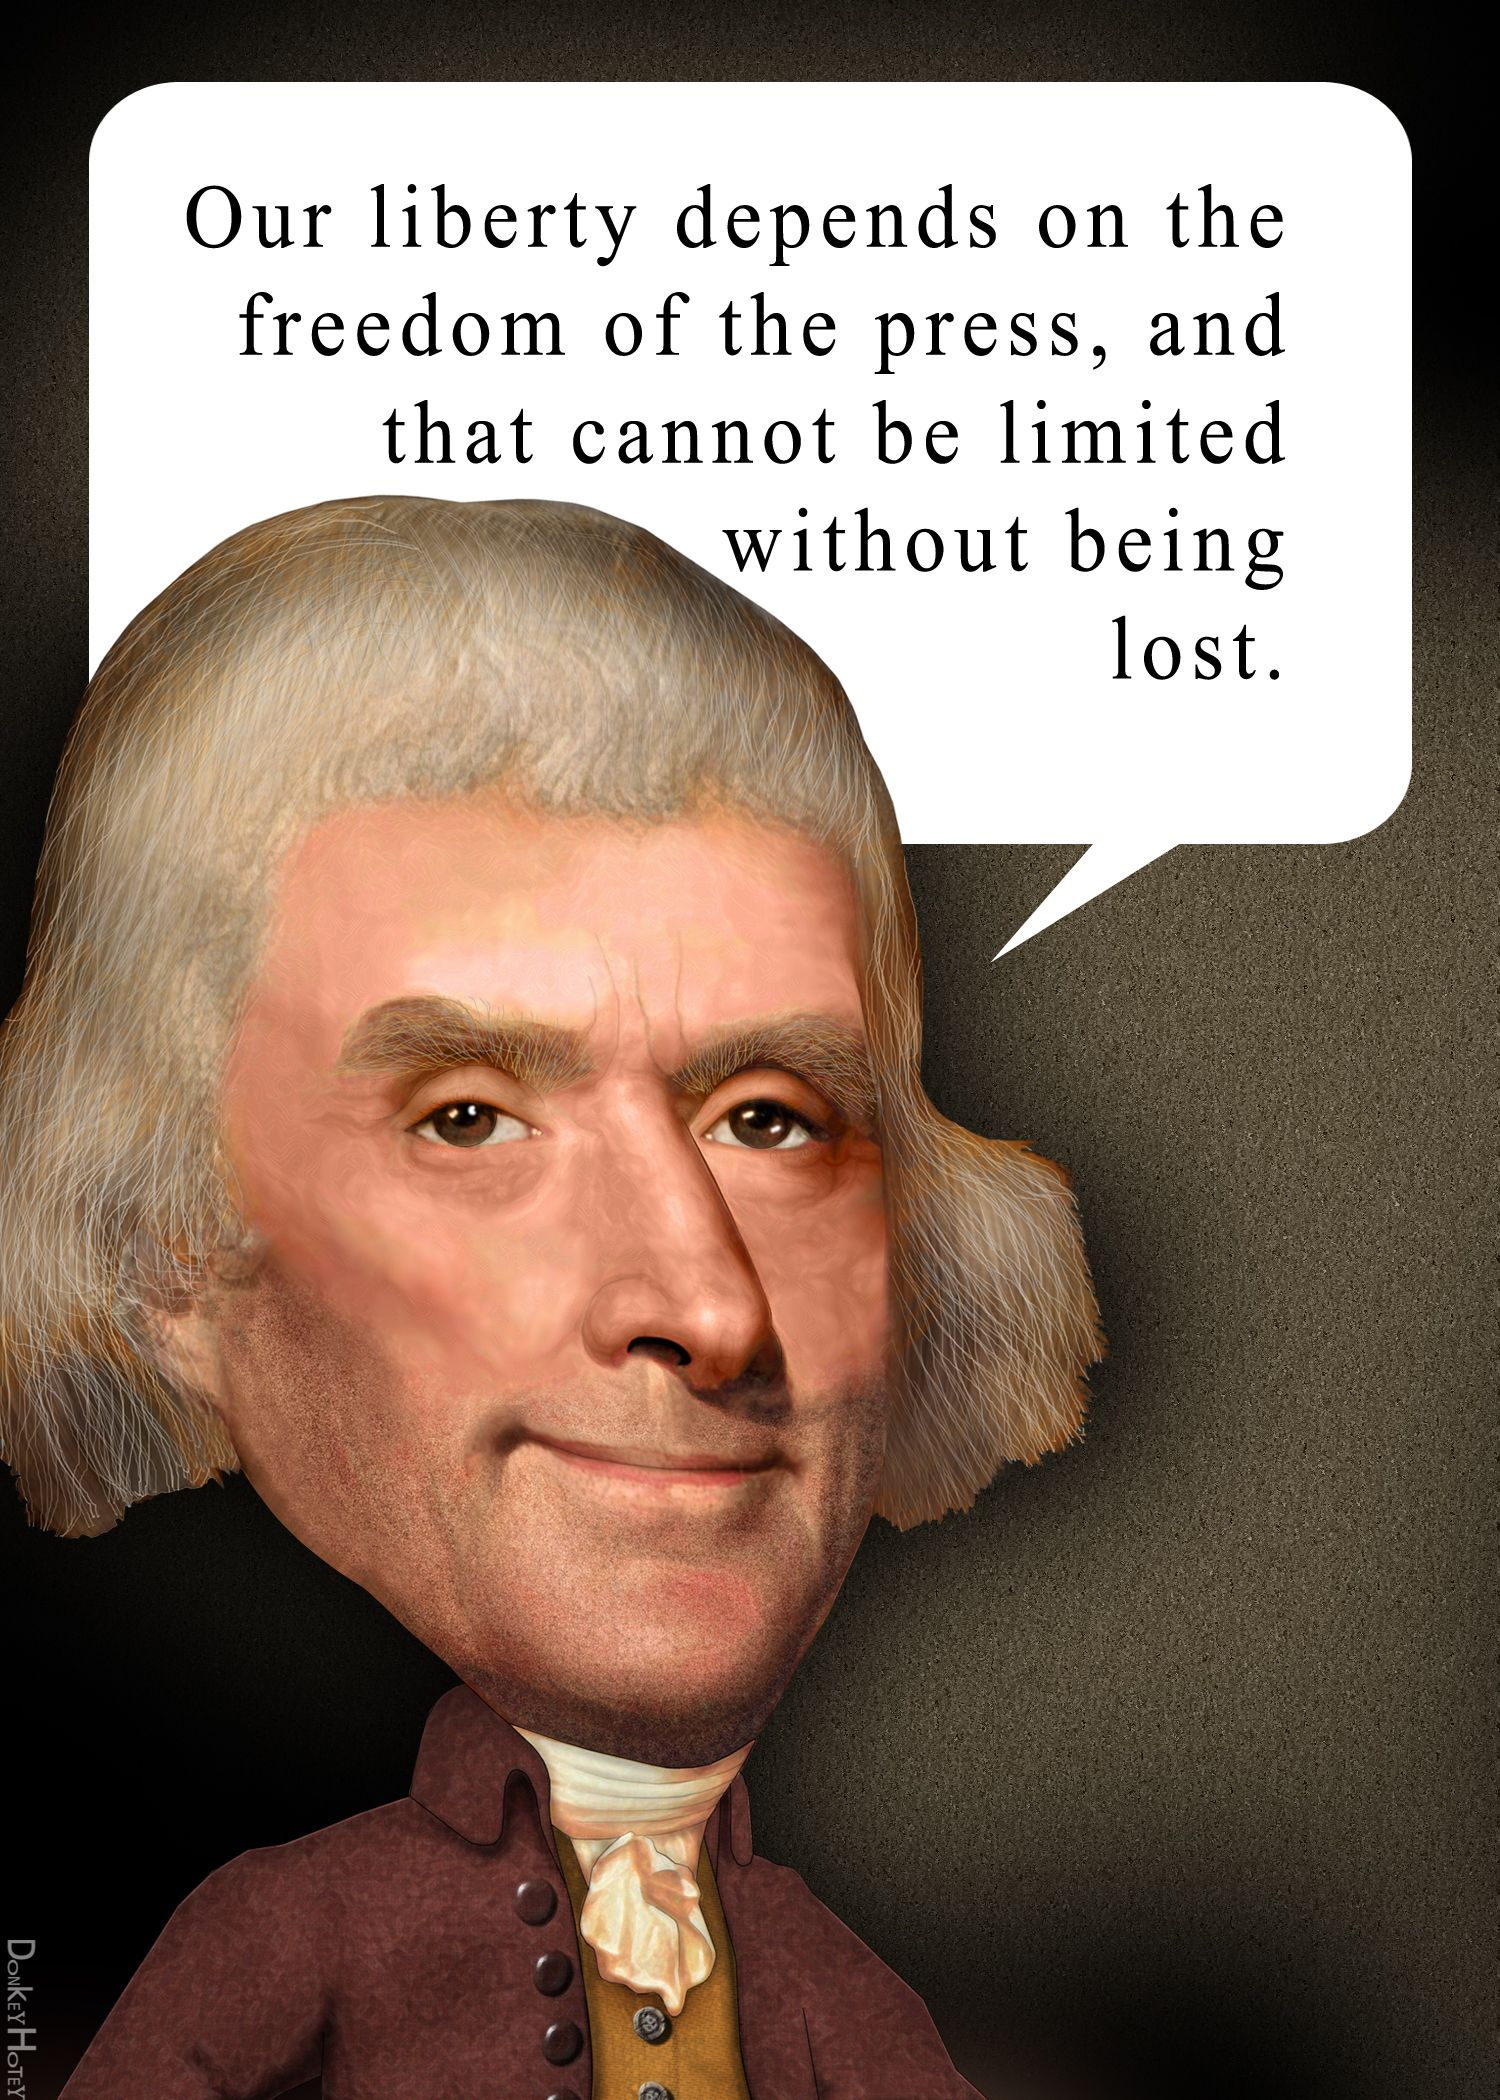 Thomas Jefferson Quotes Delectable Thomas Jefferson Quotes  Google Search  Inspiration  Pinterest